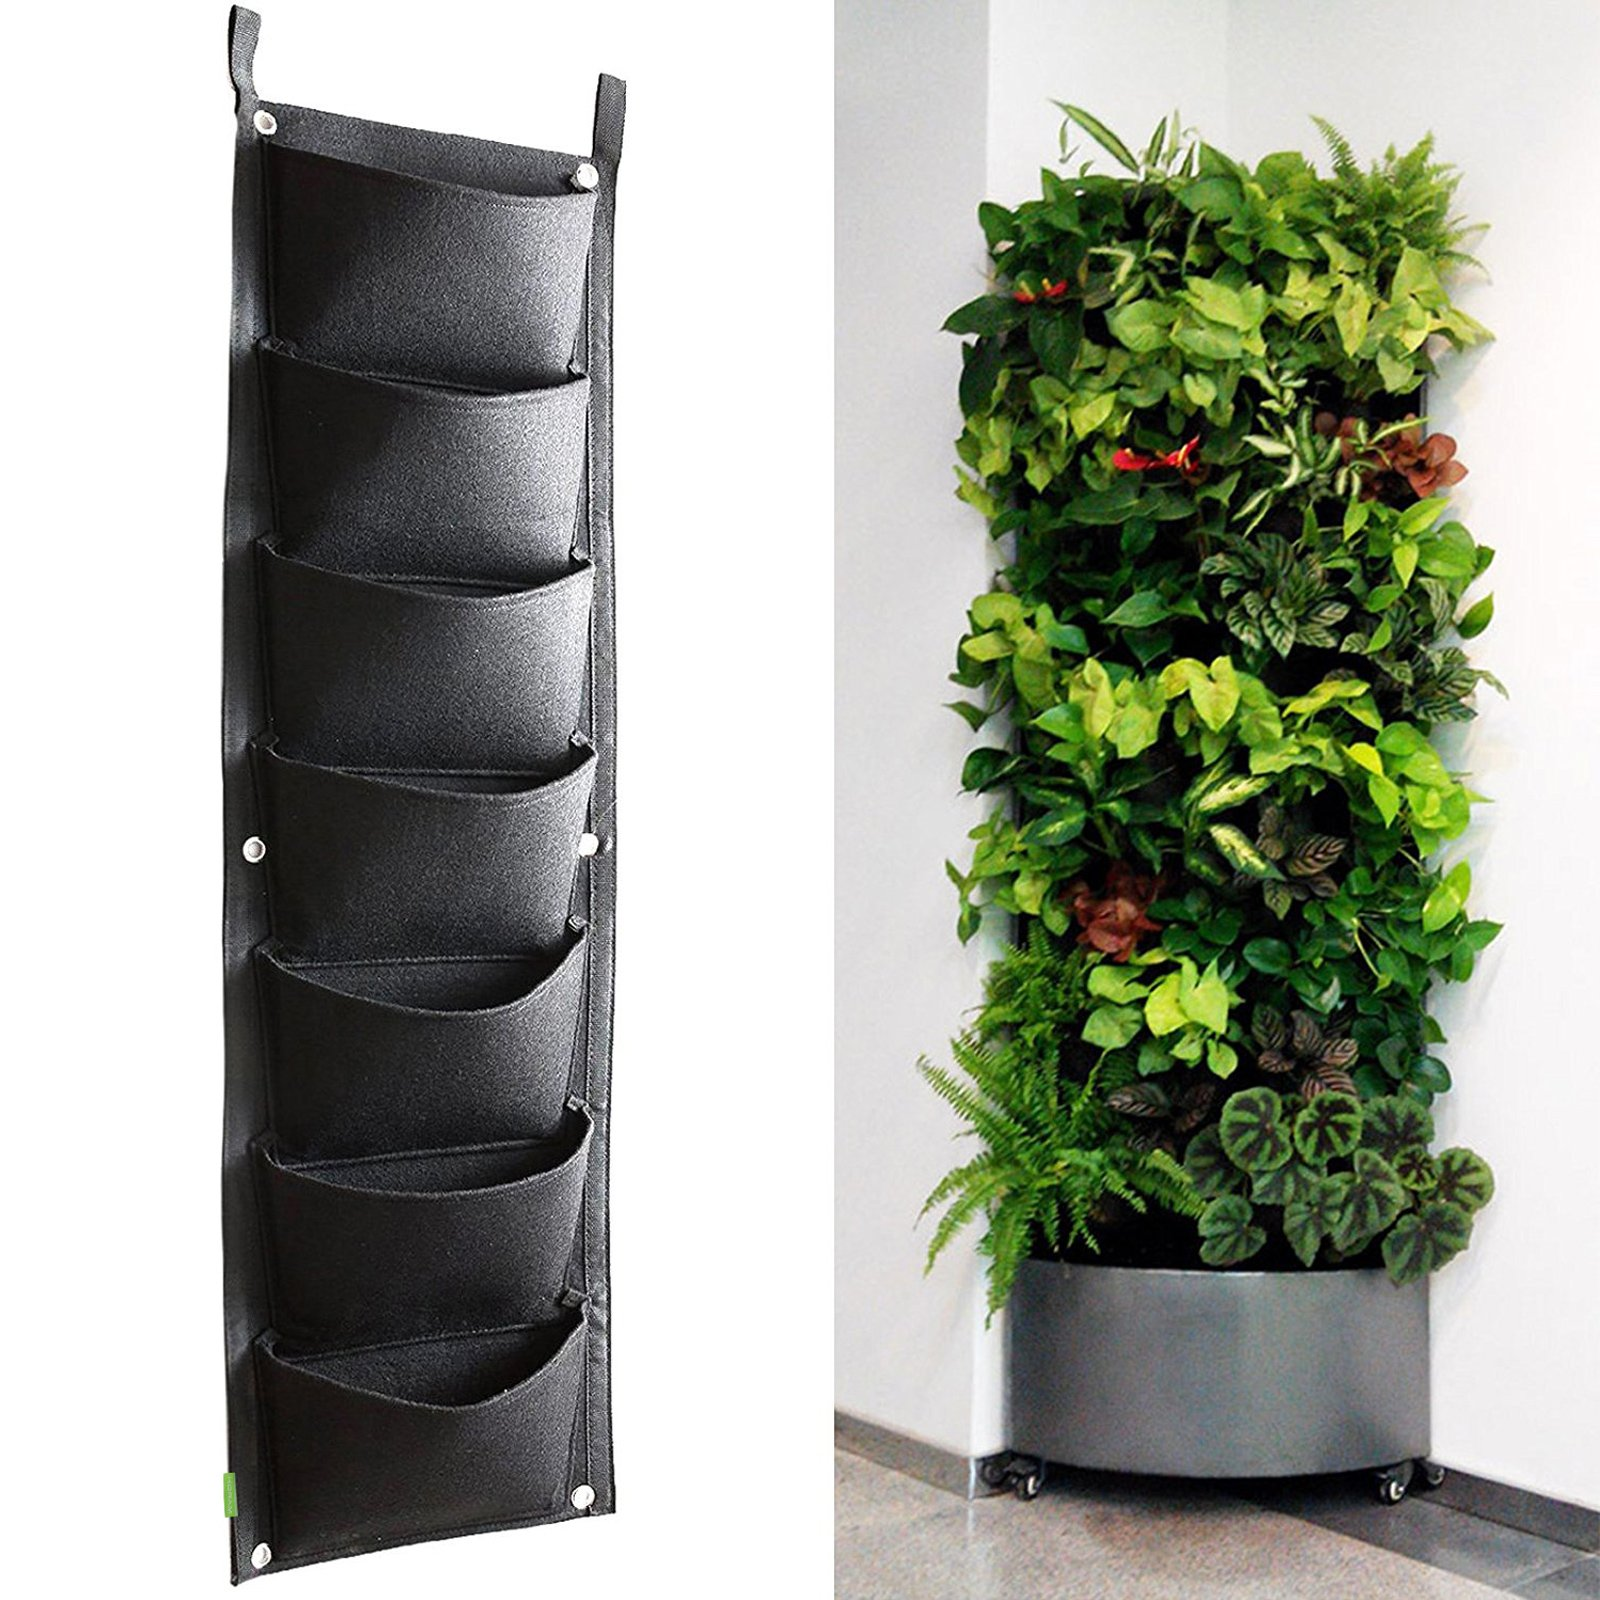 KORAM 7 Pockets Vertical Garden Wall Planter Living Hanging Flower Pouch Green Field Pot Felt Indoor/Outdoor Wall Mount Balcony Plant Grow Bag for Herbs Vegetables and Flowers (10pcs of Plant tags) by KORAM